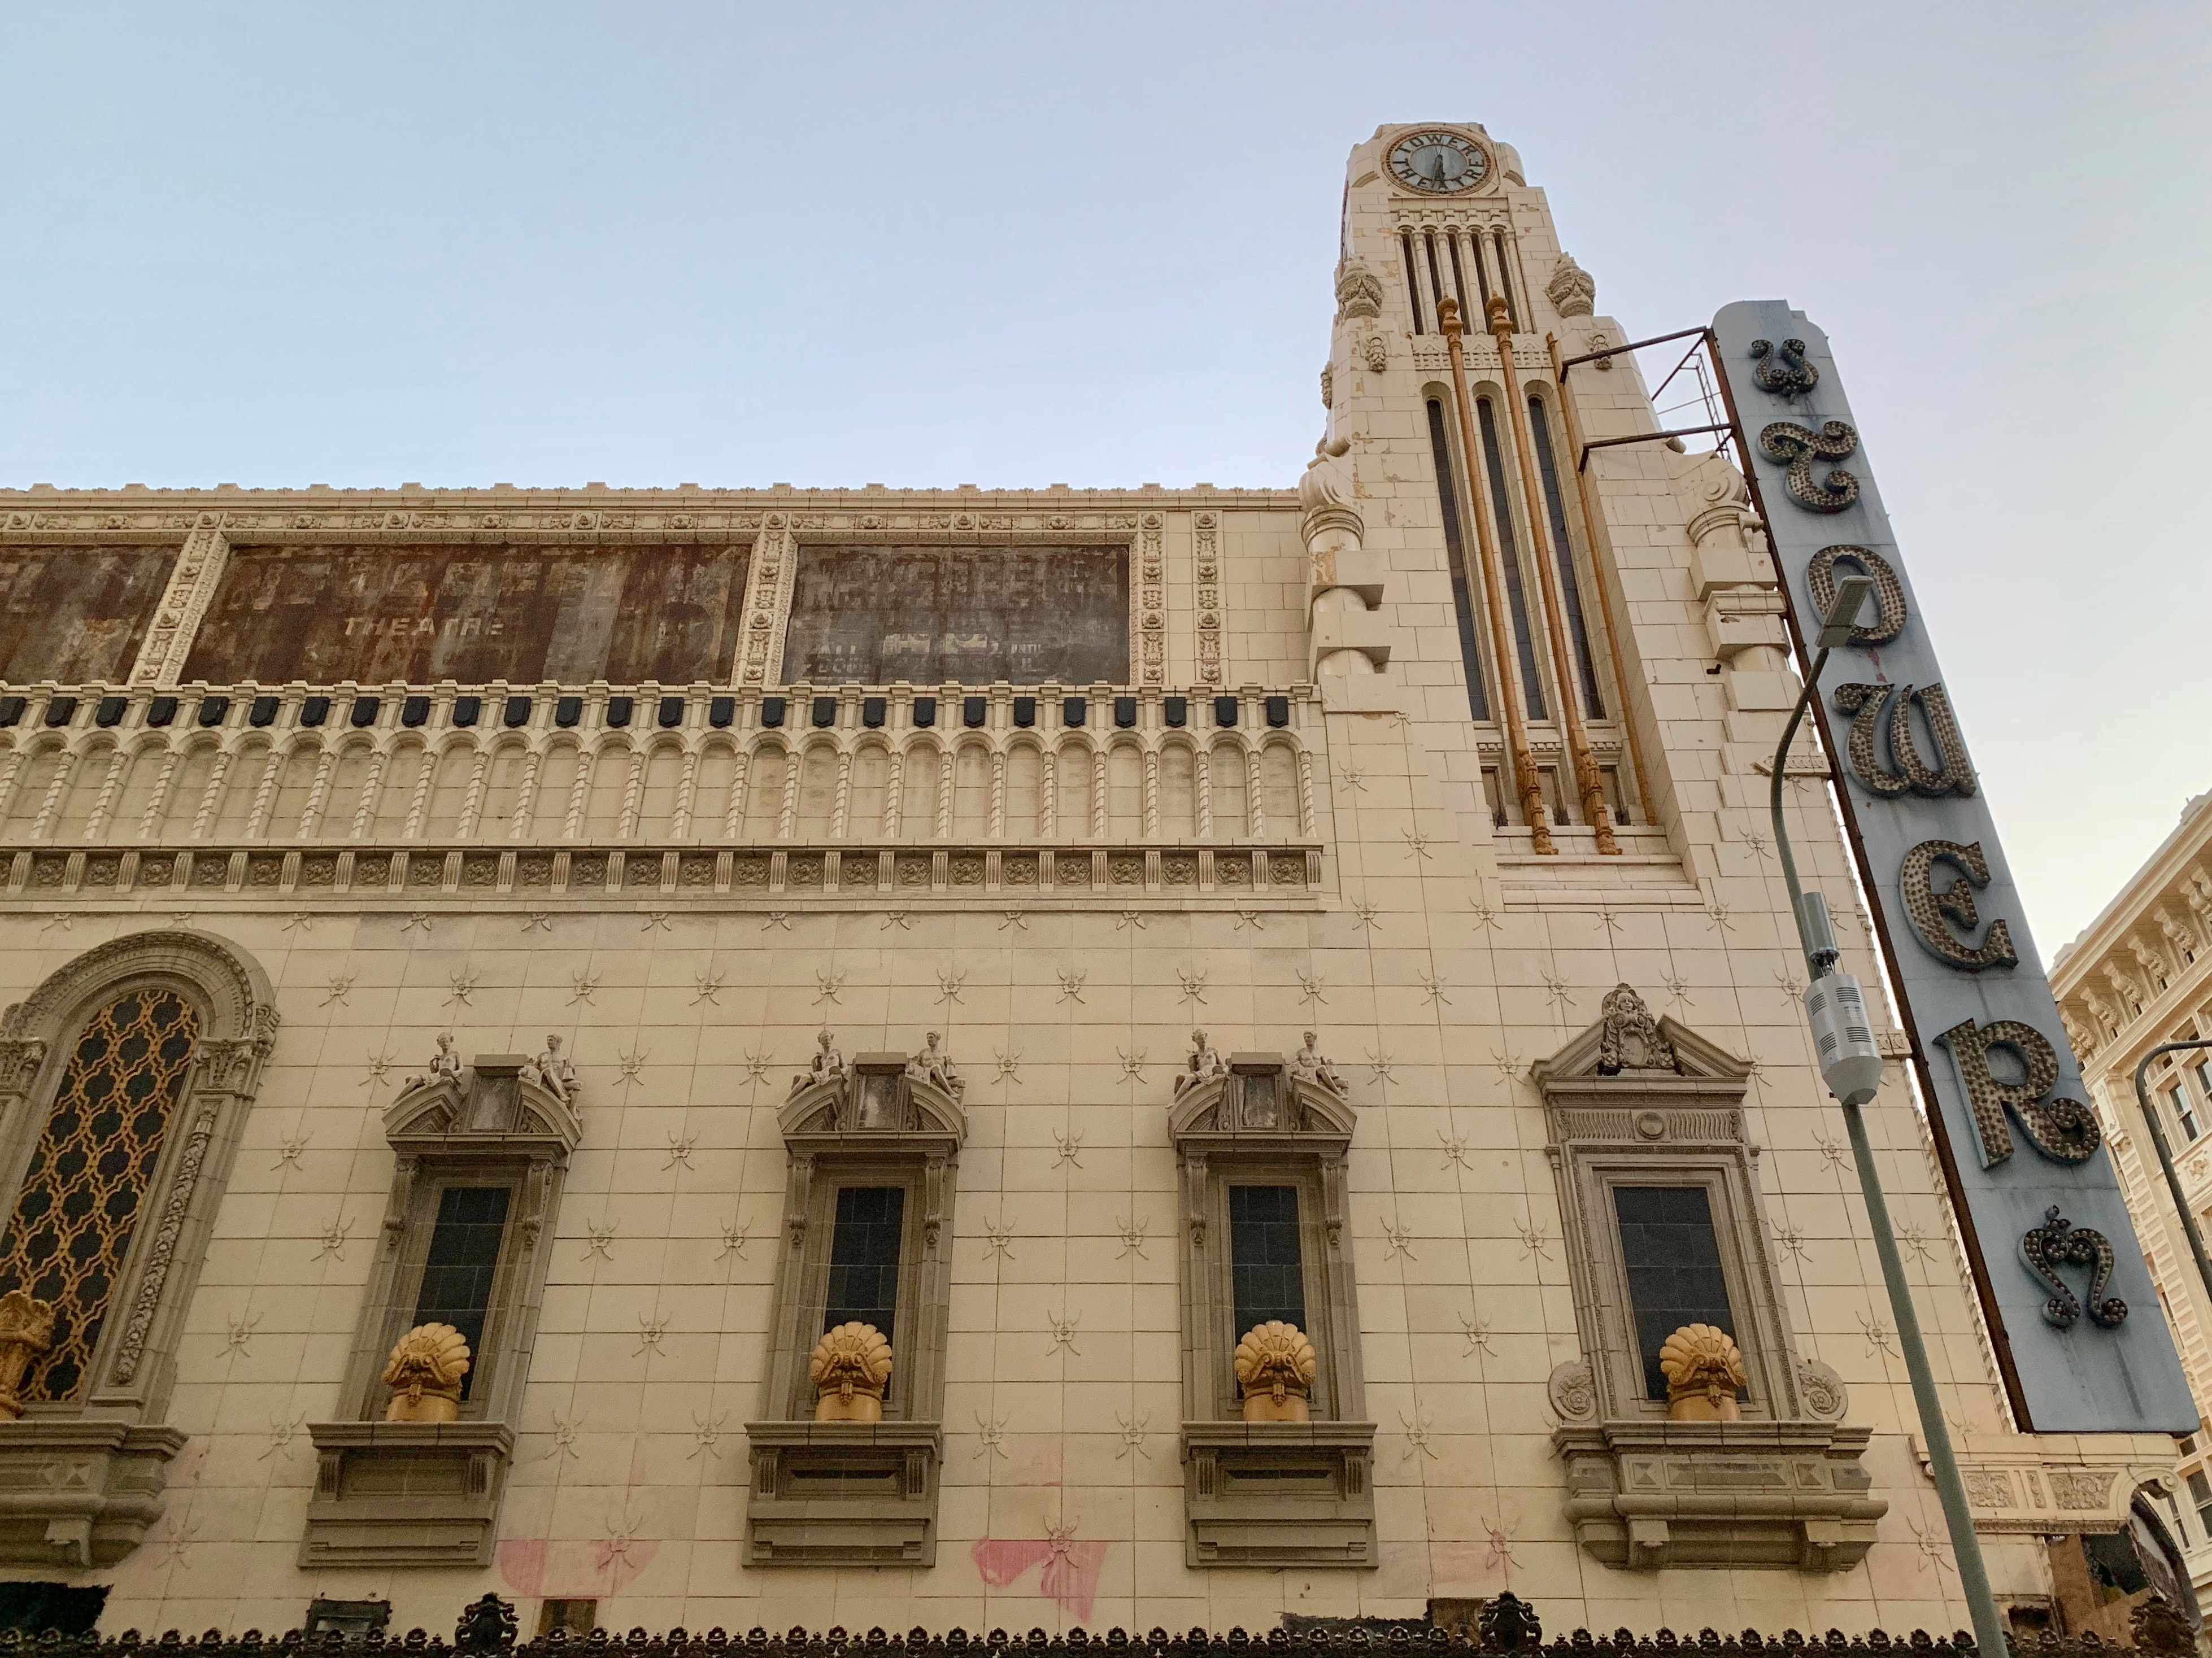 Photos: Documenting LA's Tower Theatre before Apple's retail